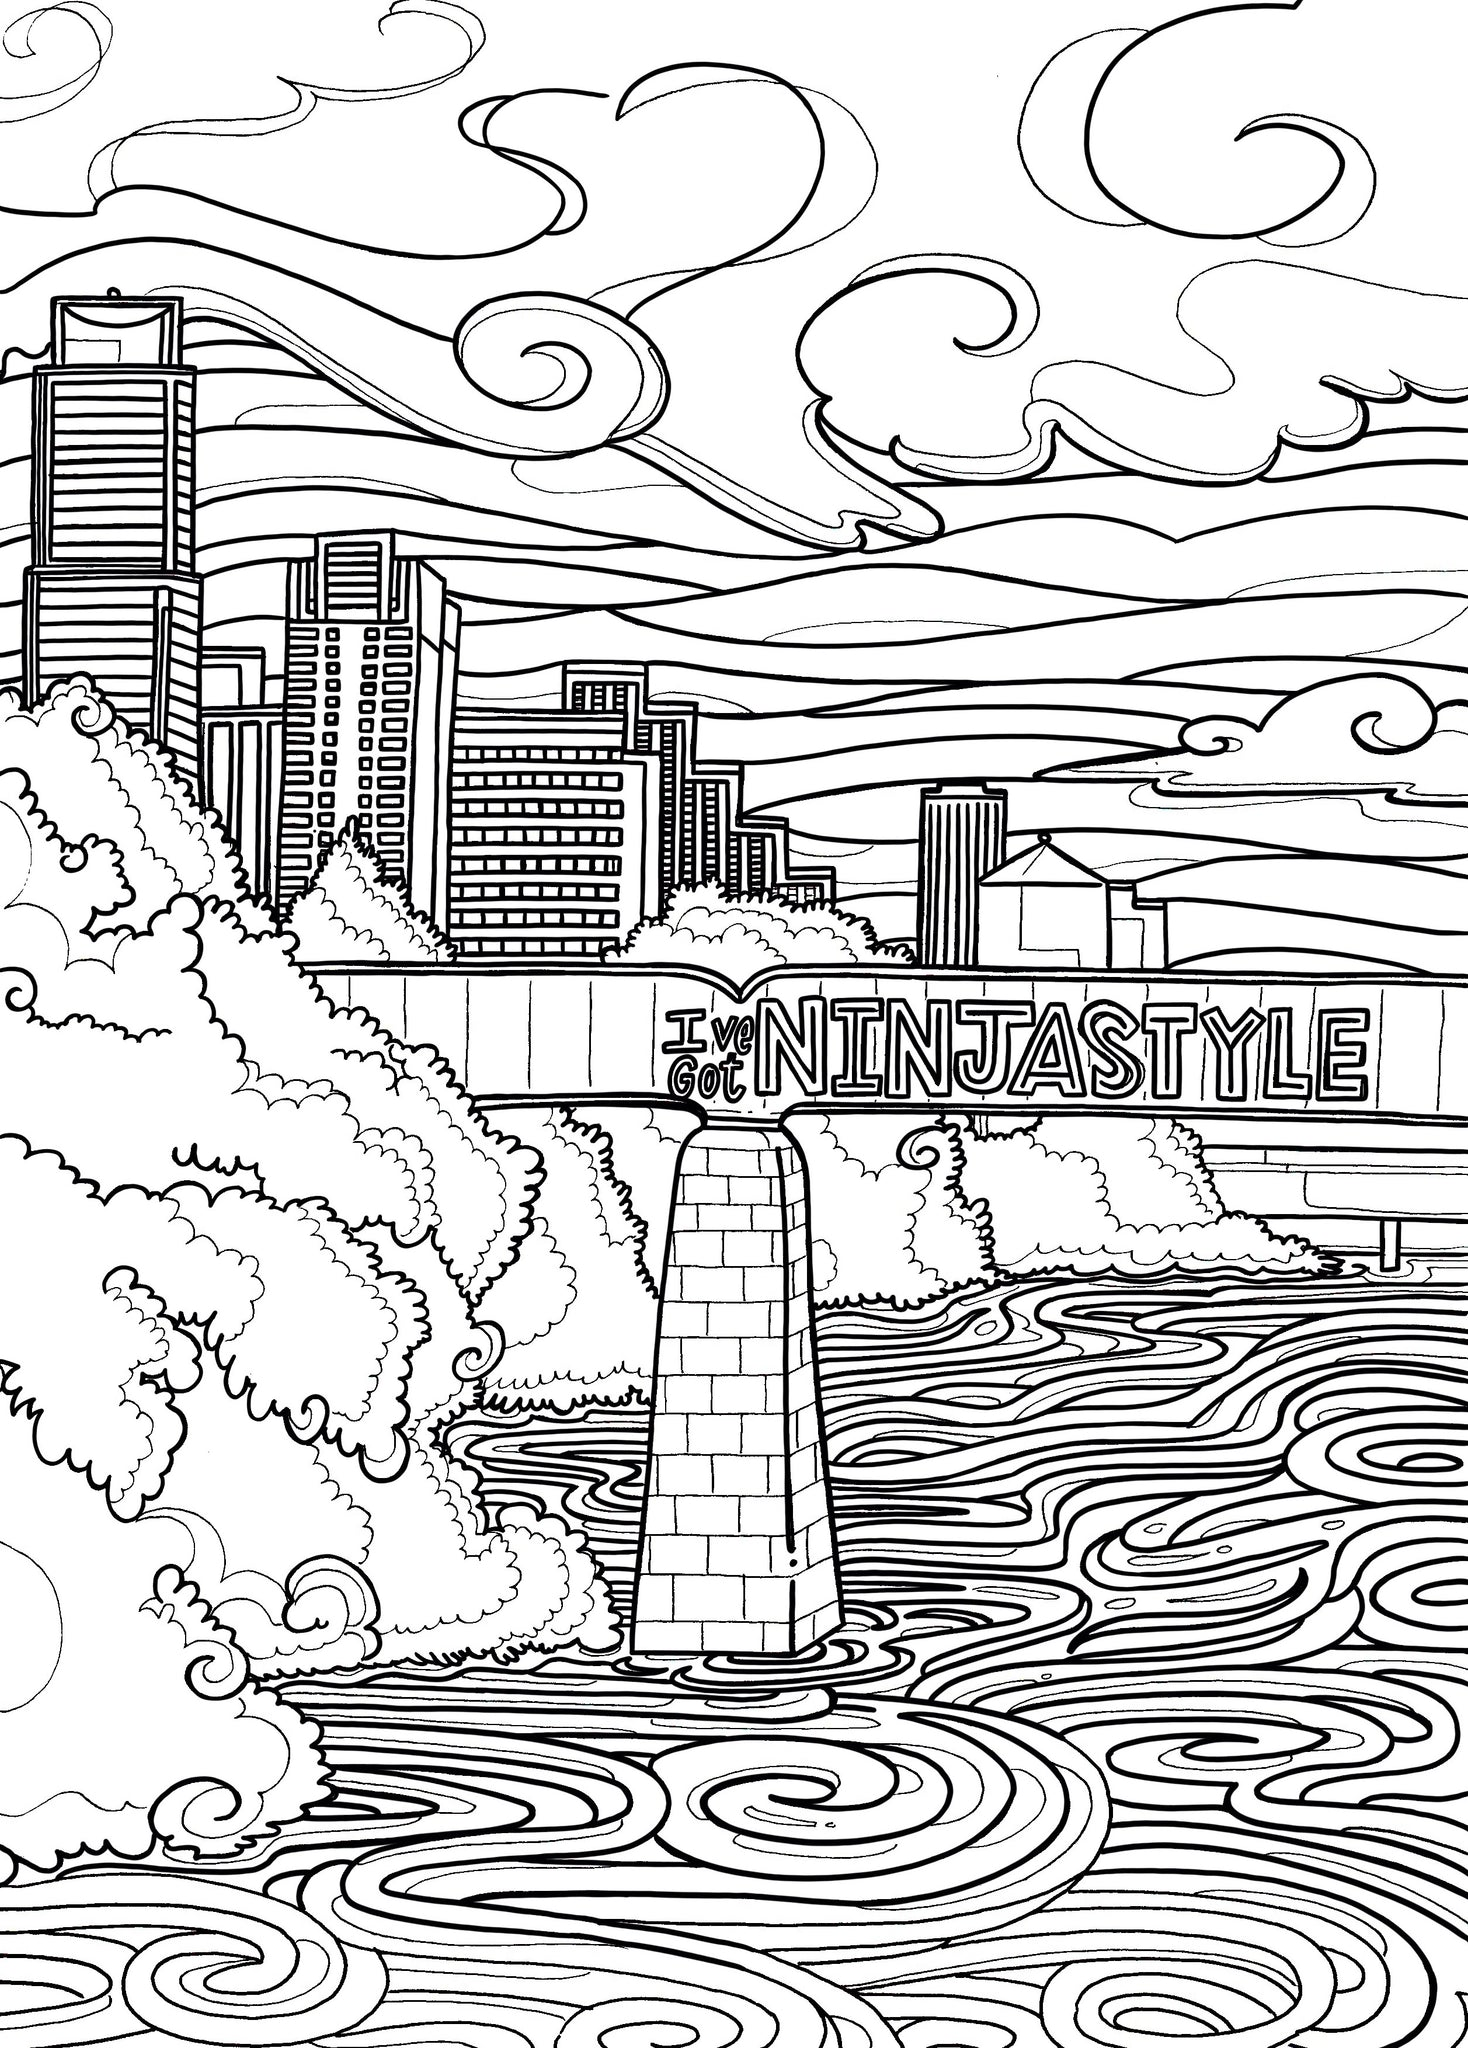 Ninja Style Coloring Page - Borrelli Illustrations